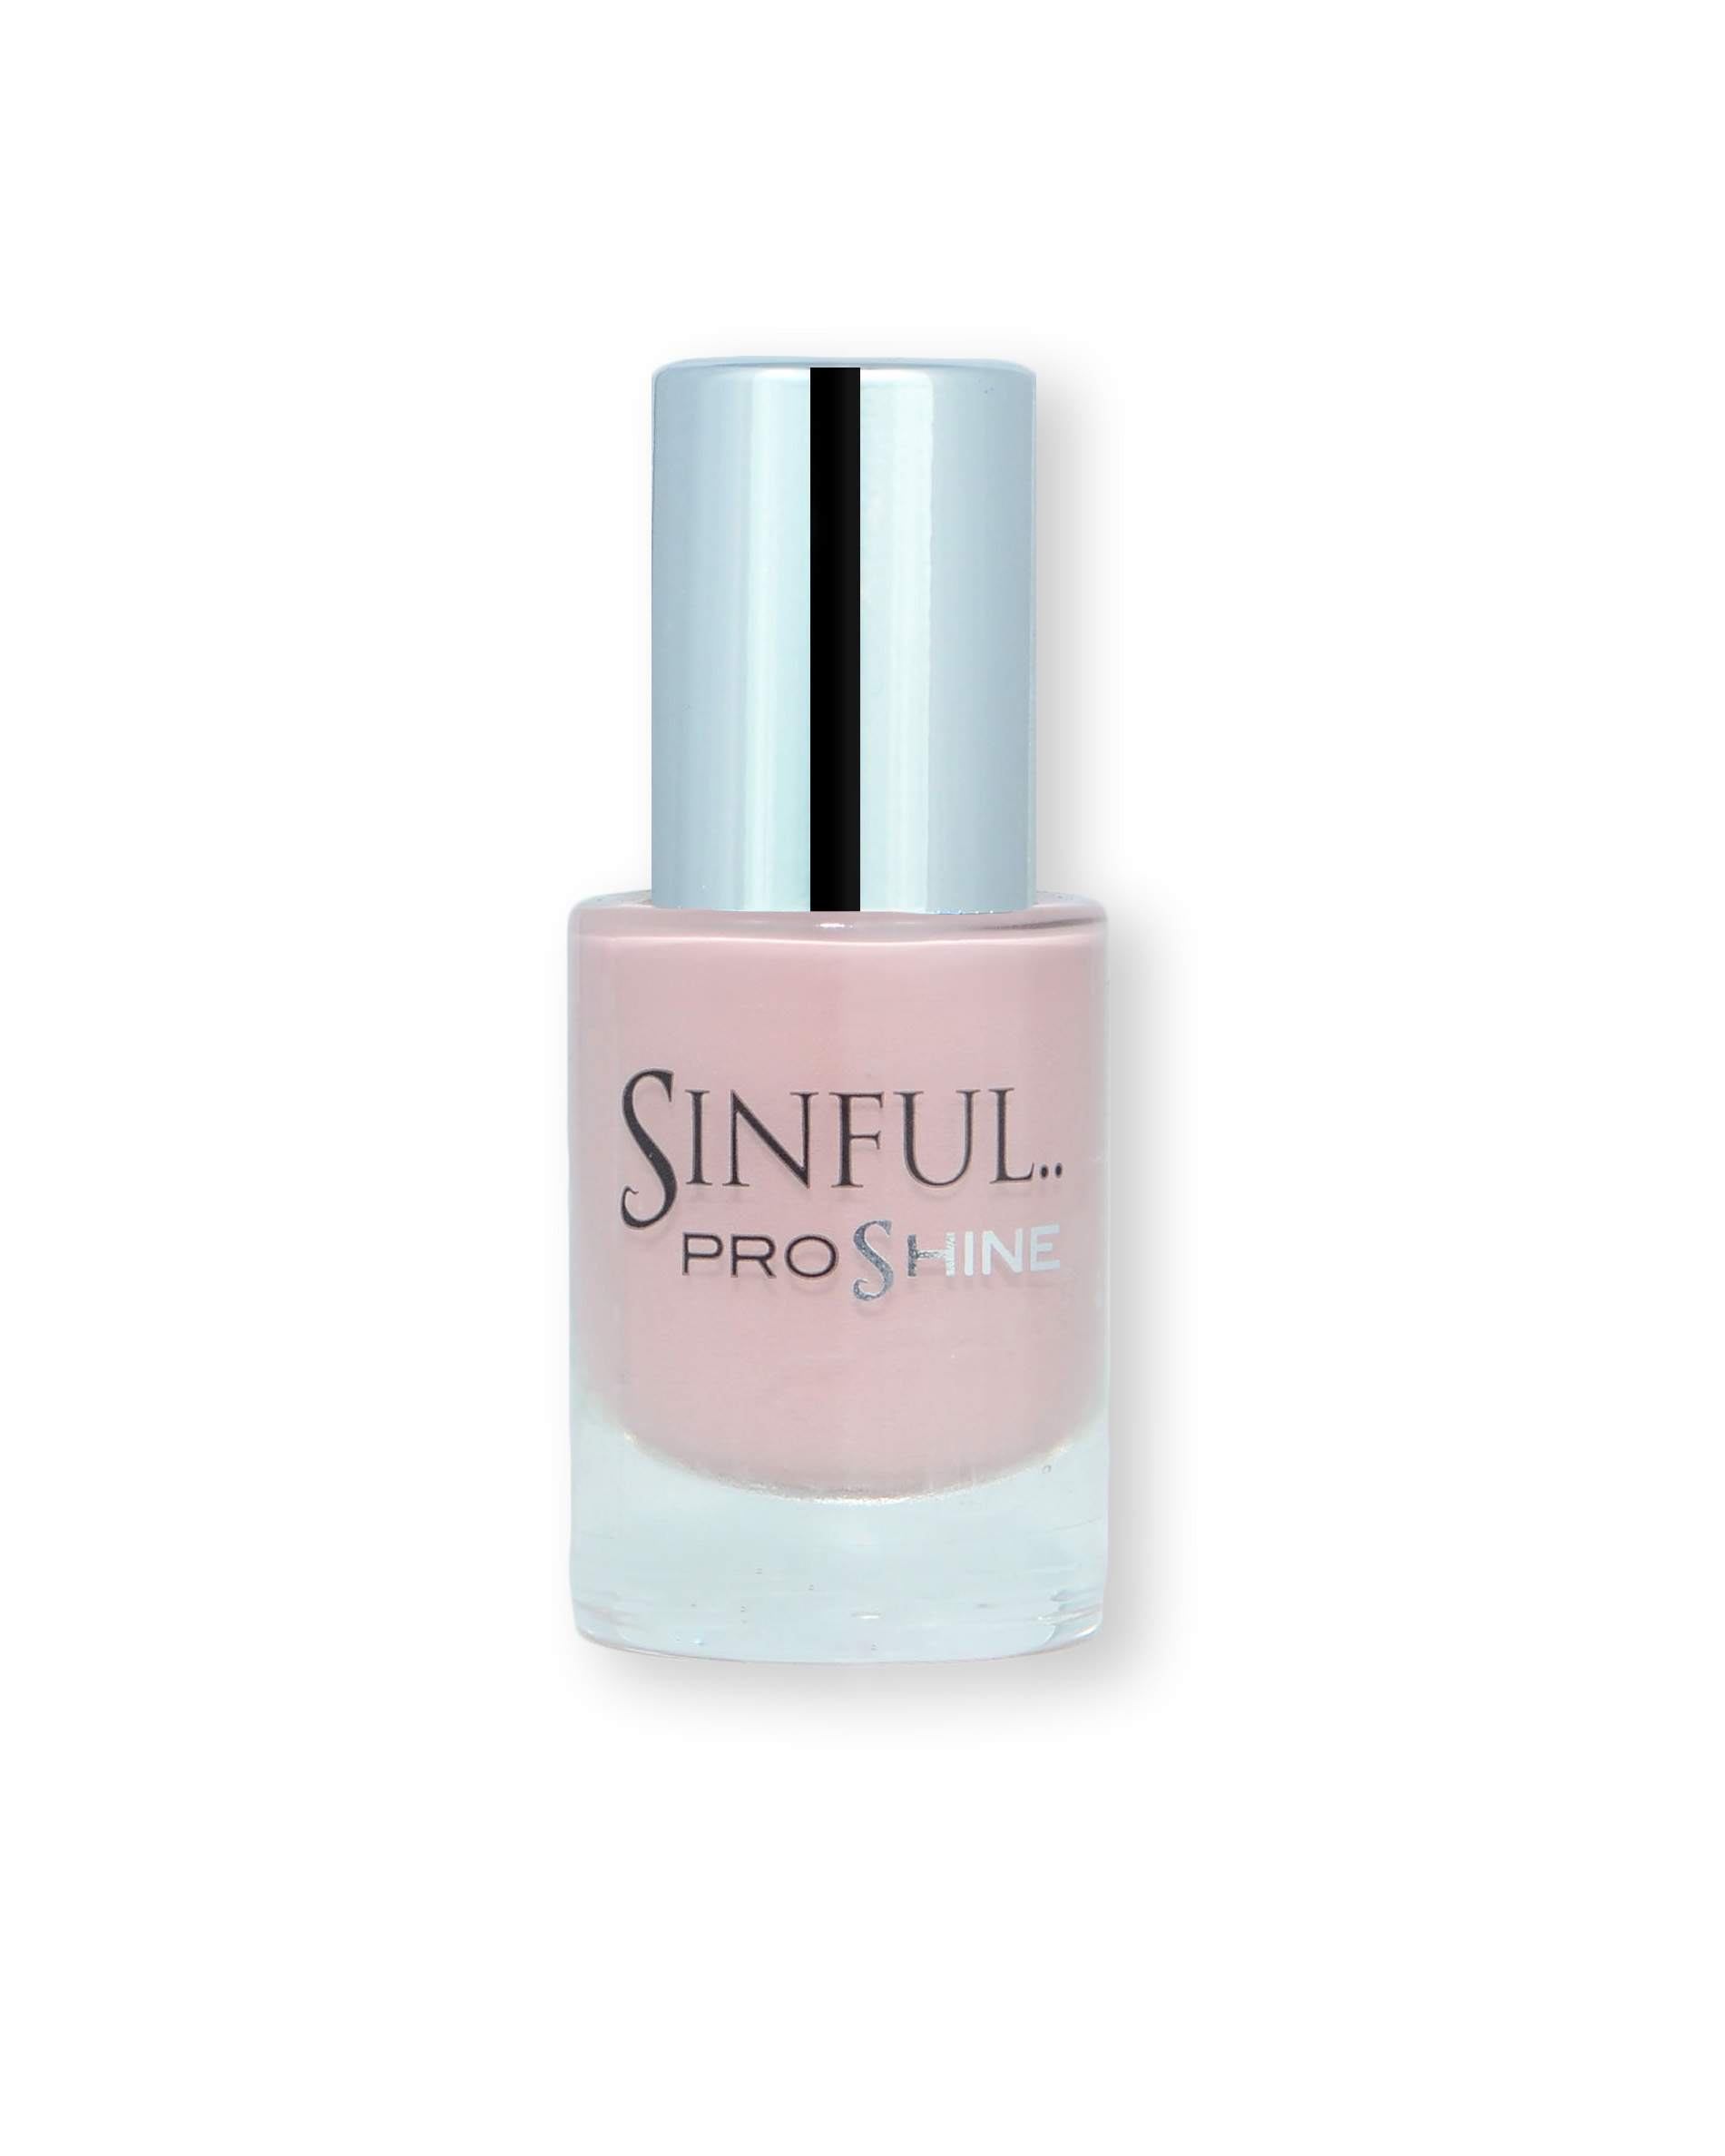 Sinful PROshine is a revolution into top spec imitation gel-like formula, easy application, full coverage and a sleek finish. Spoil yourself with the choice of 42 shades, expertly formulated with the finest grade of pigments. In The Flesh: Tanned taupe, creme finish